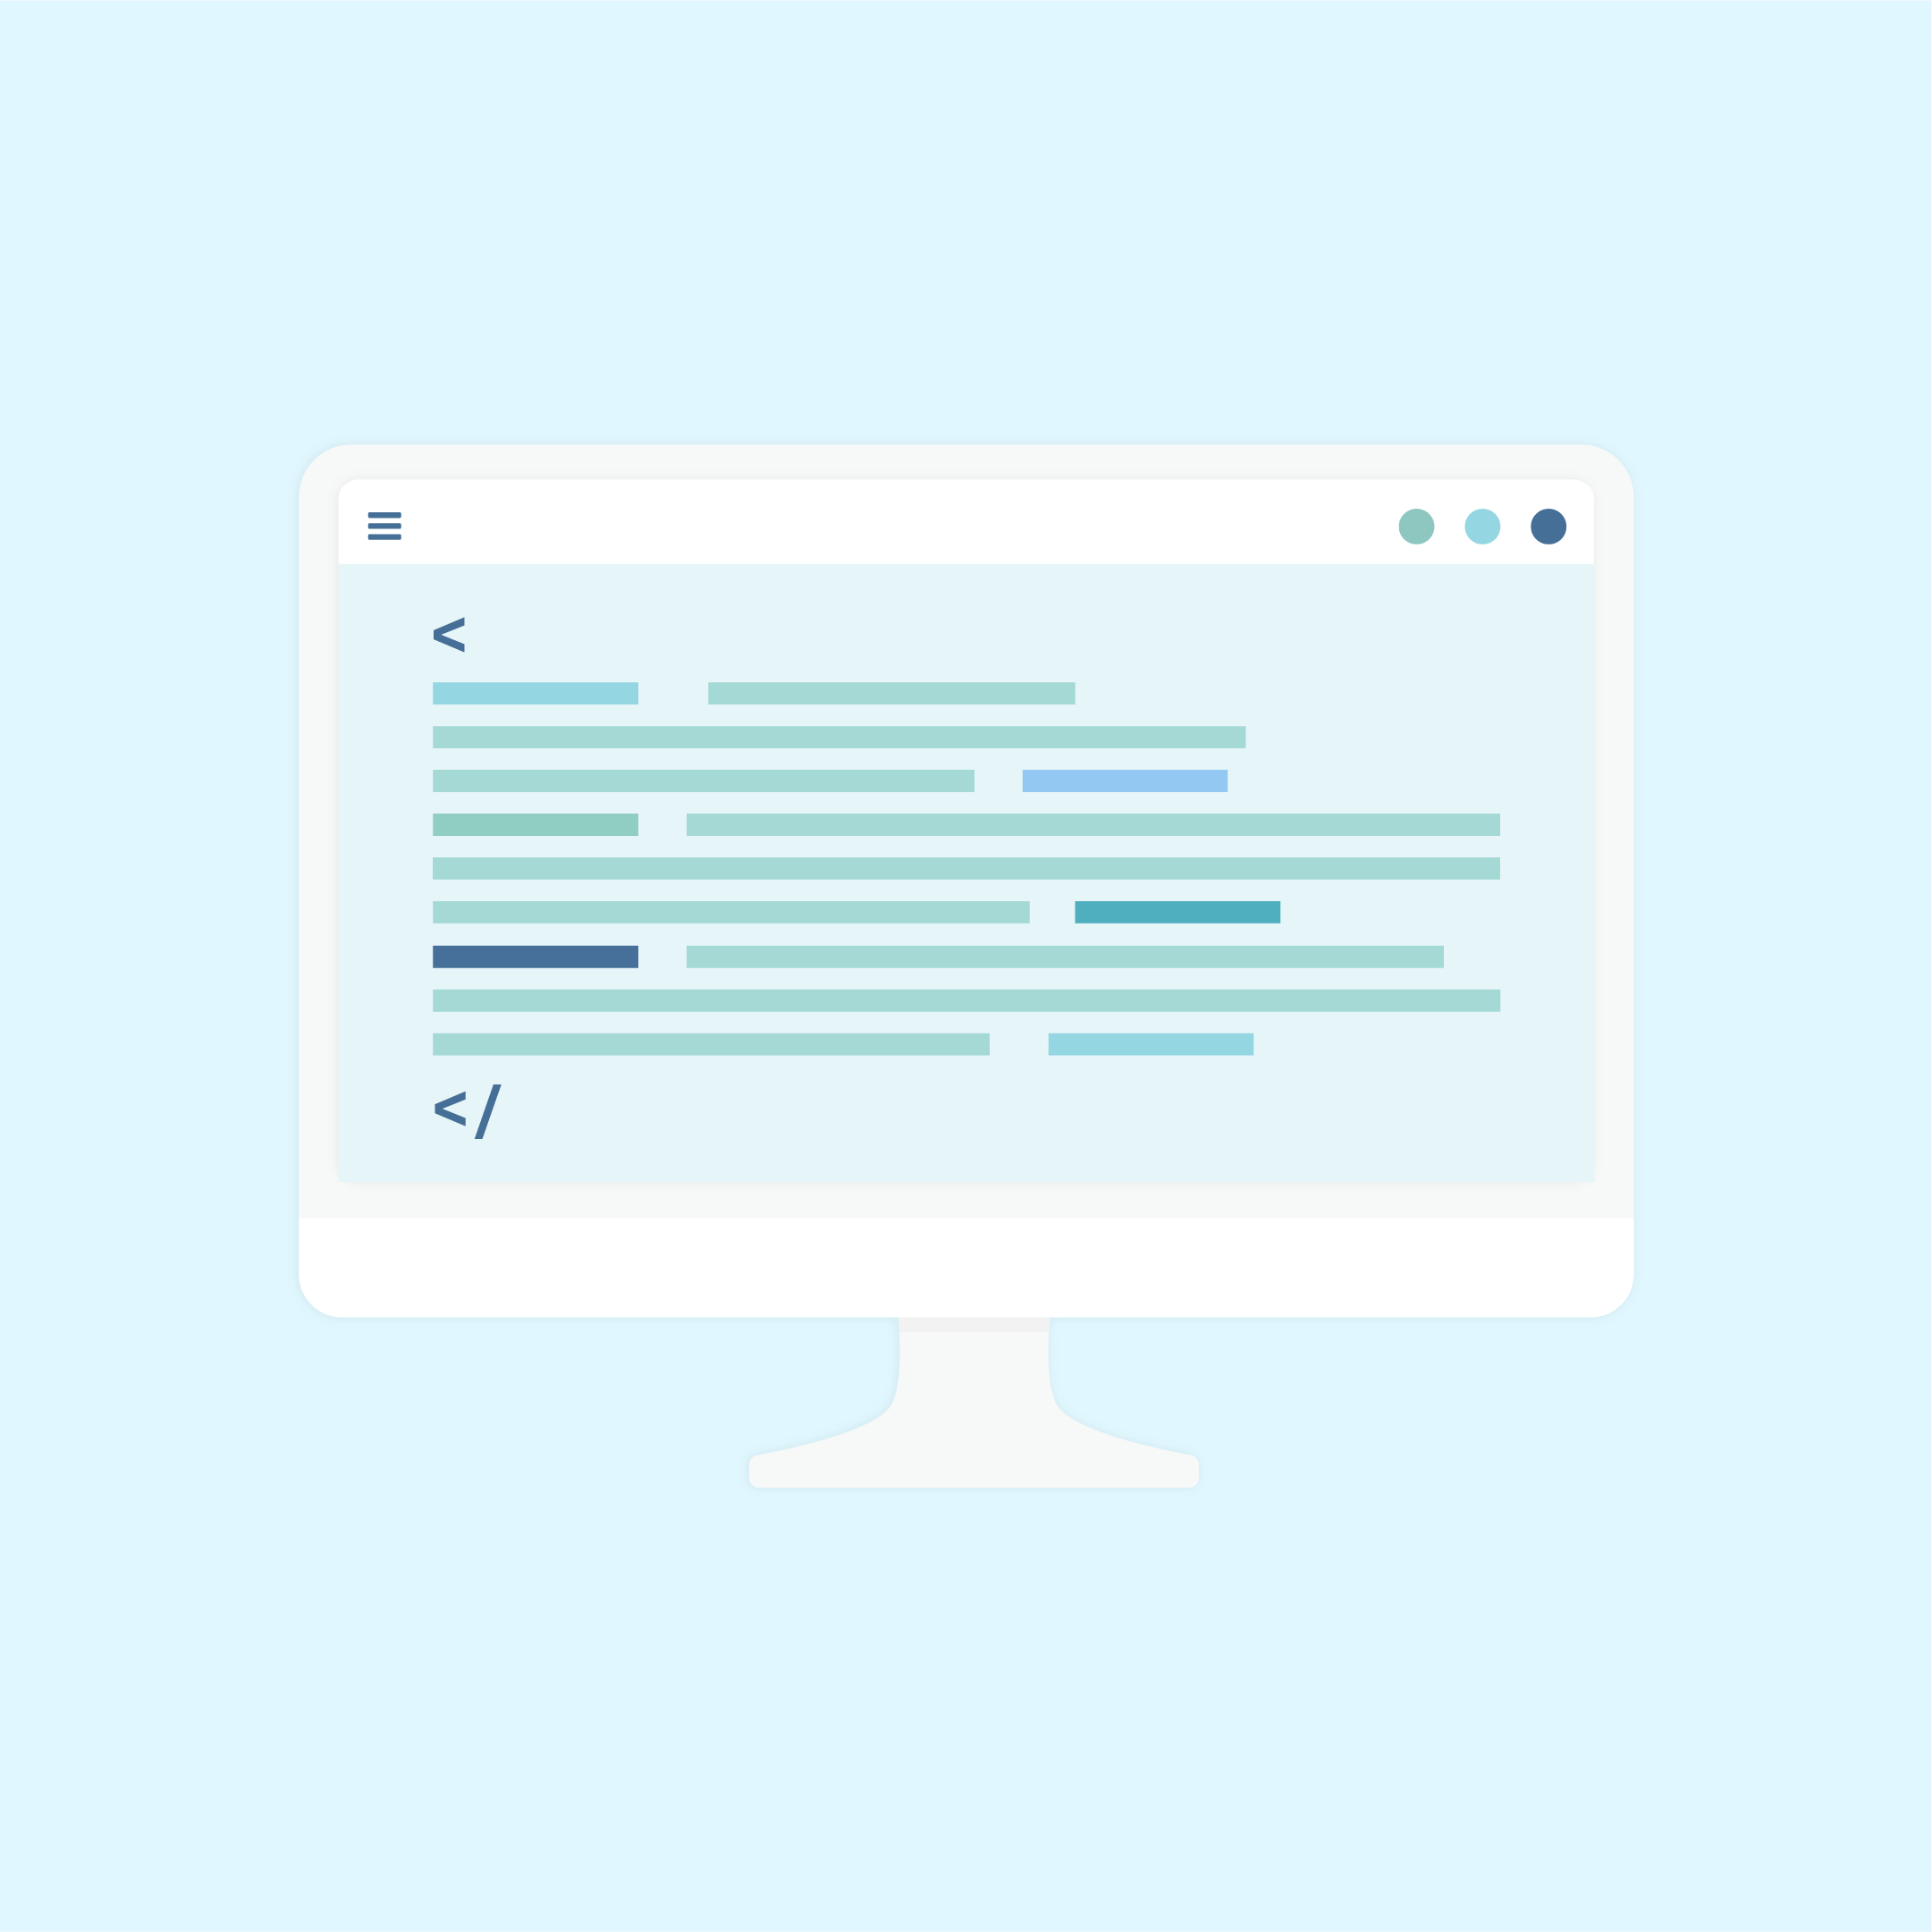 Vector illustration of desktop computer representing the custom code & CSS styling in flat design style